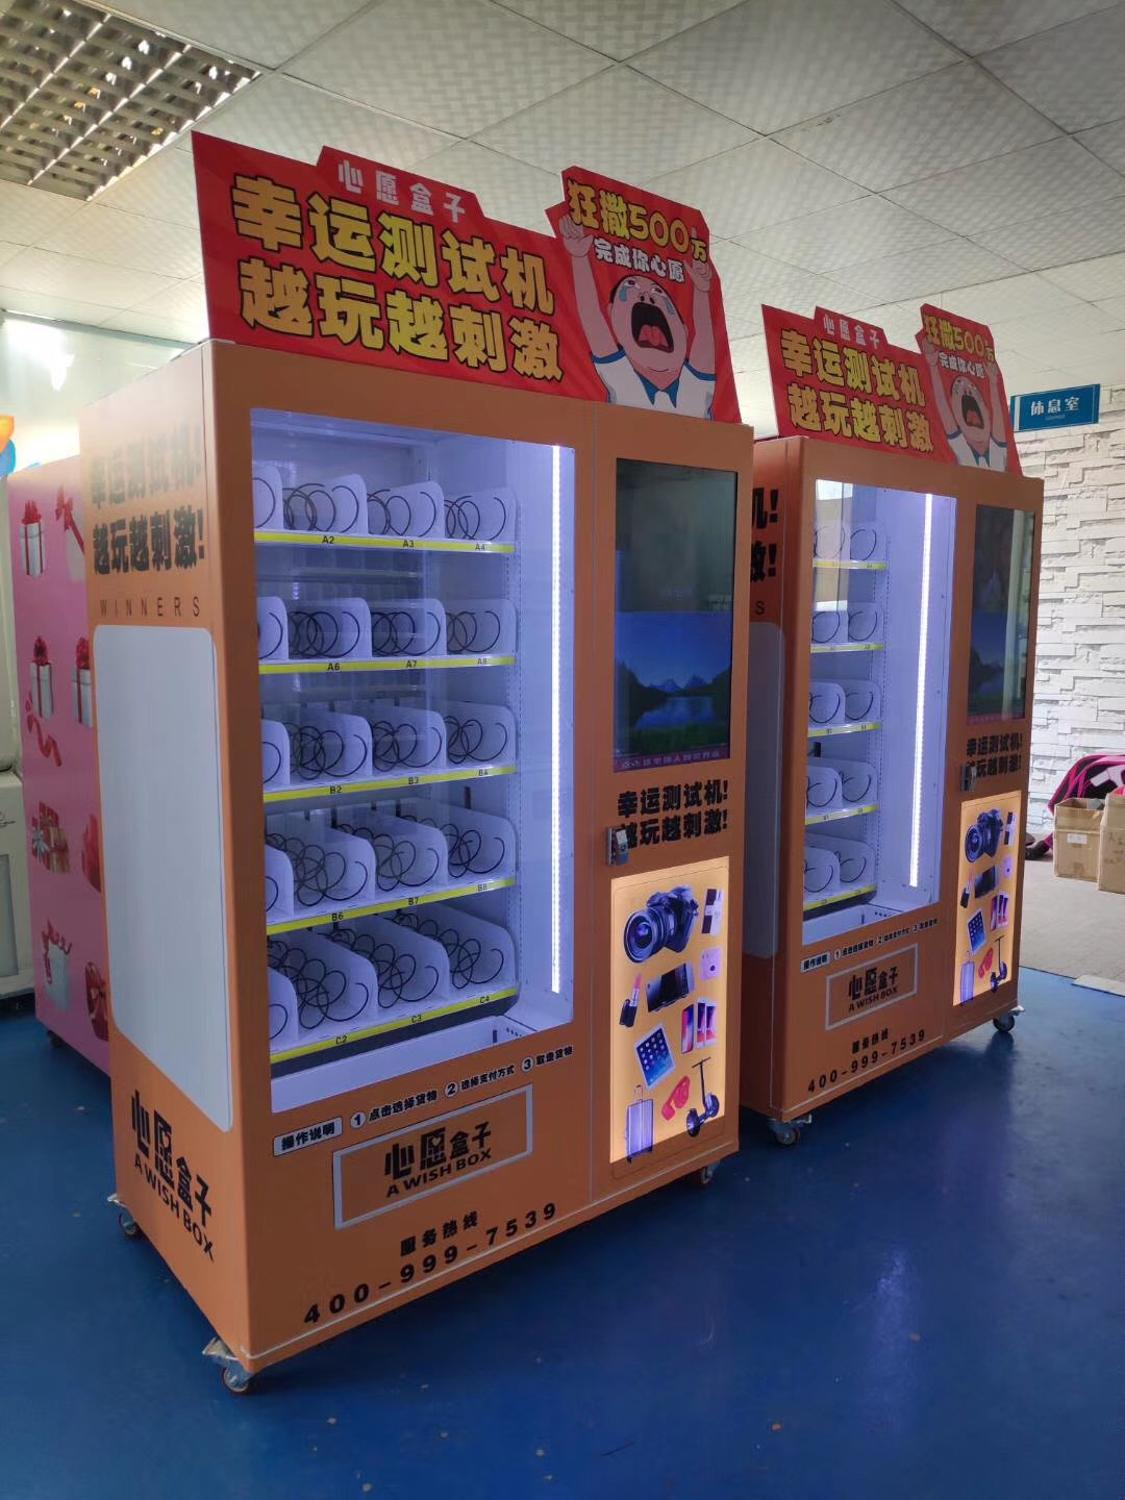 Automatic Terminal Bill Coin Cashless Bank Card Wechat Alipay Payment Self Service Vending Cabinet Kiosk